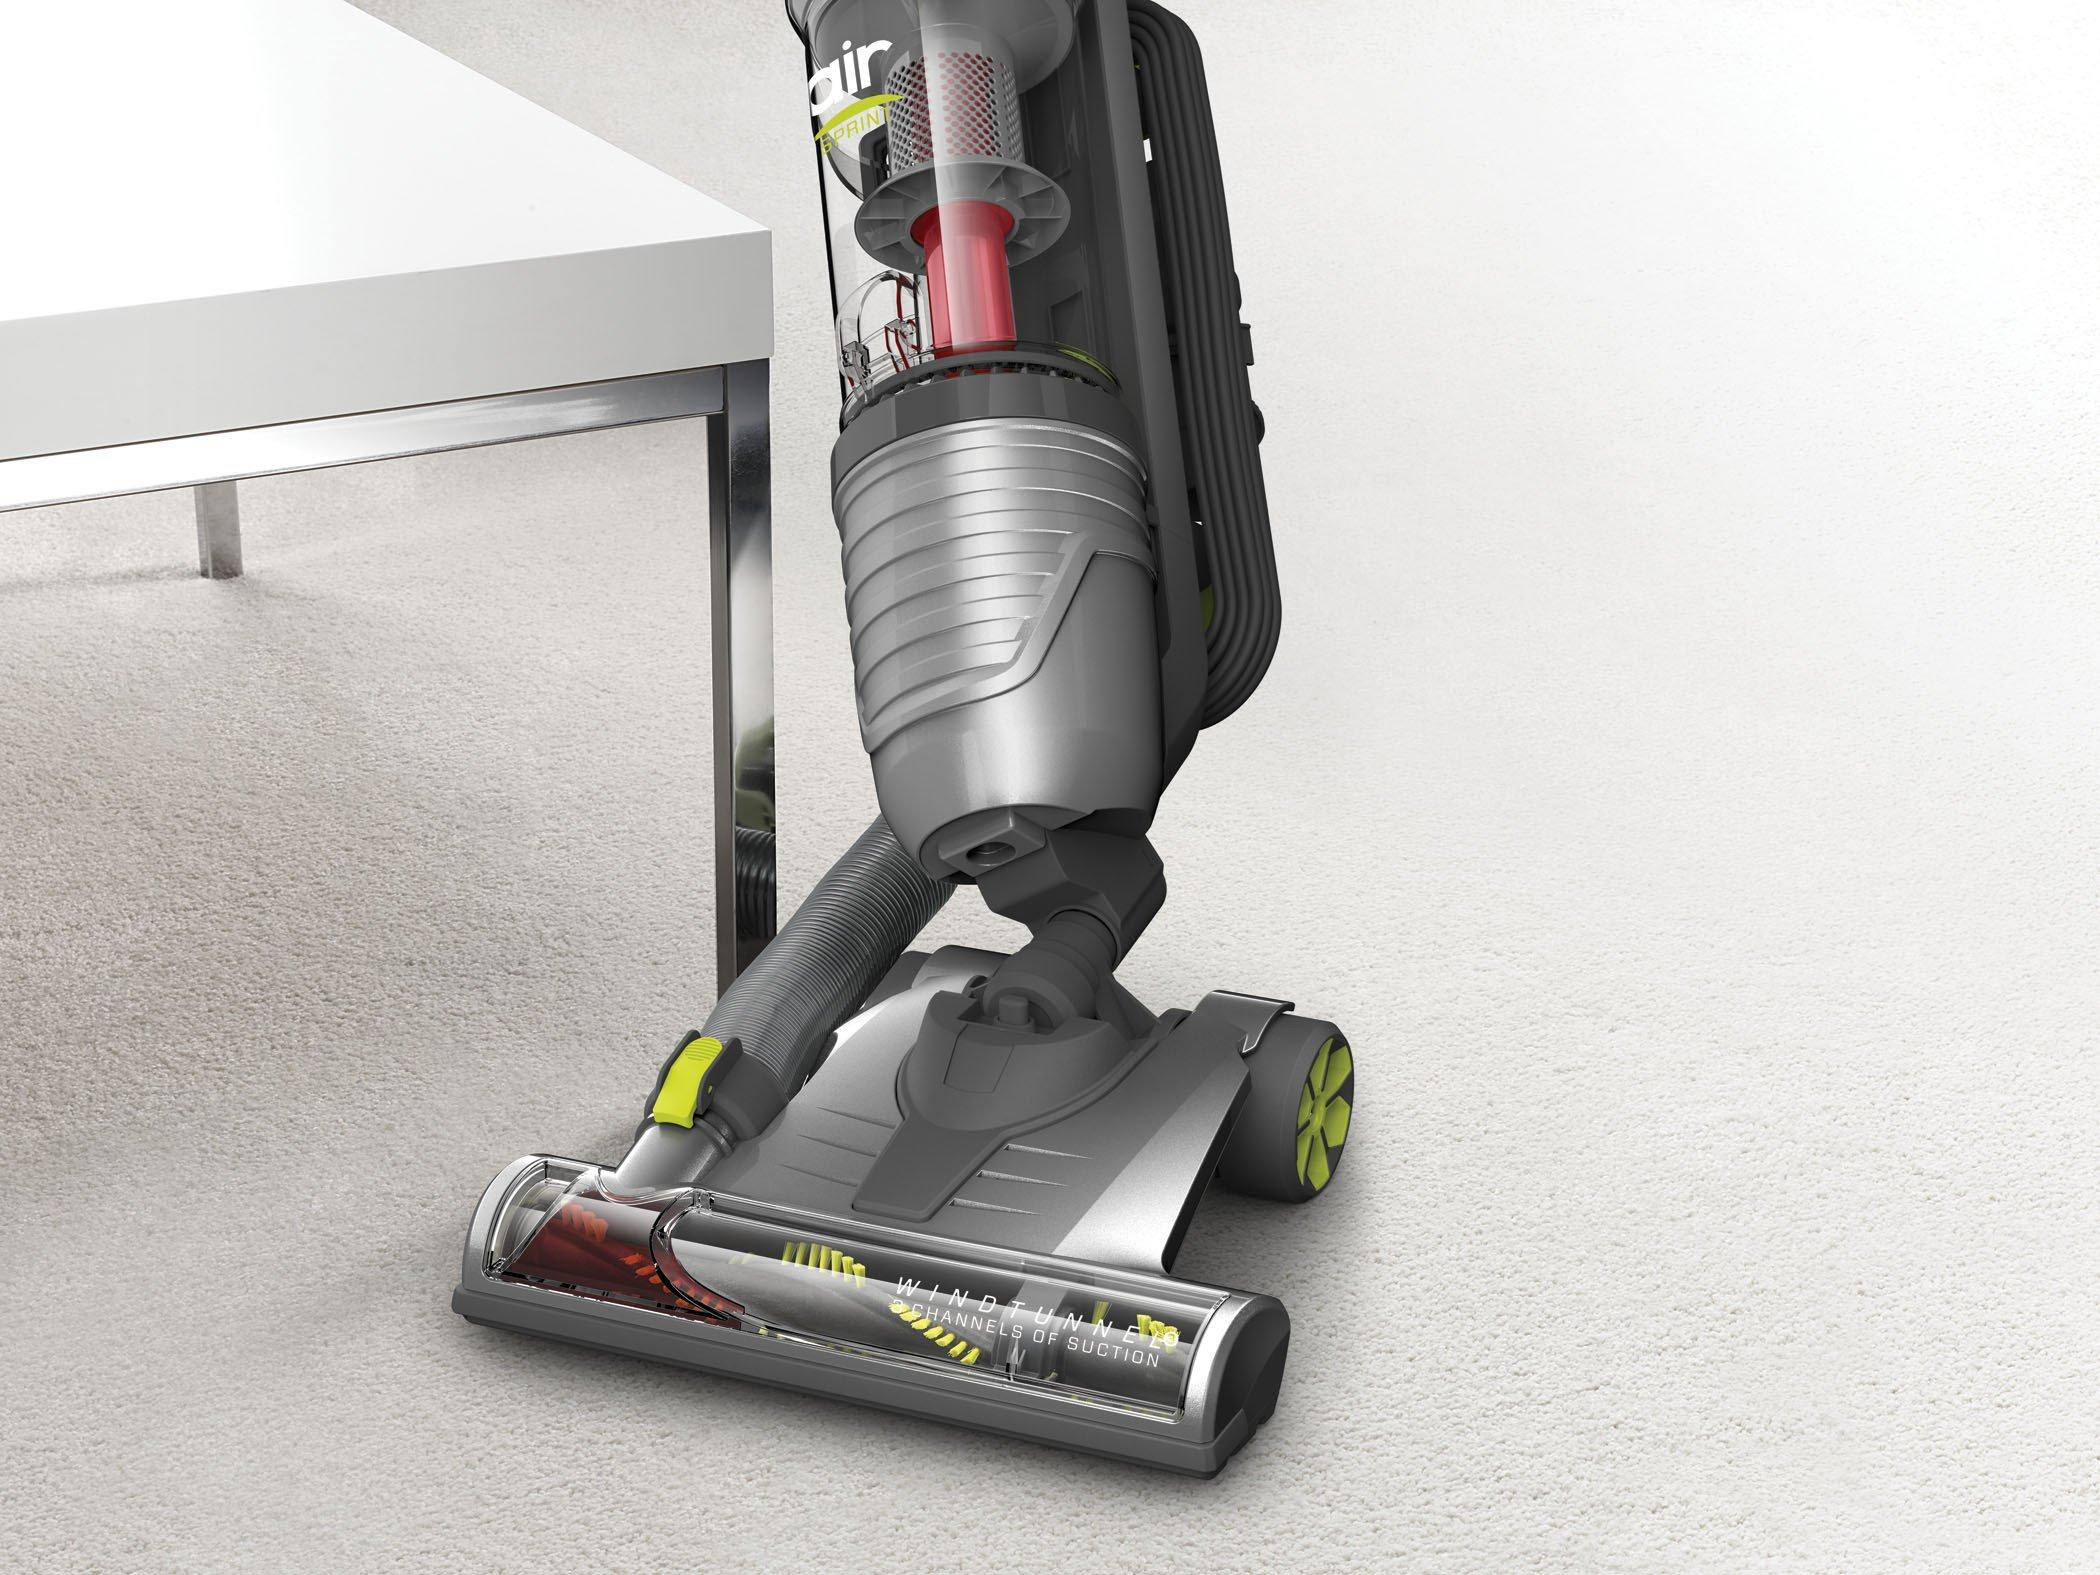 WindTunnel Air Sprint Upright Vacuum4